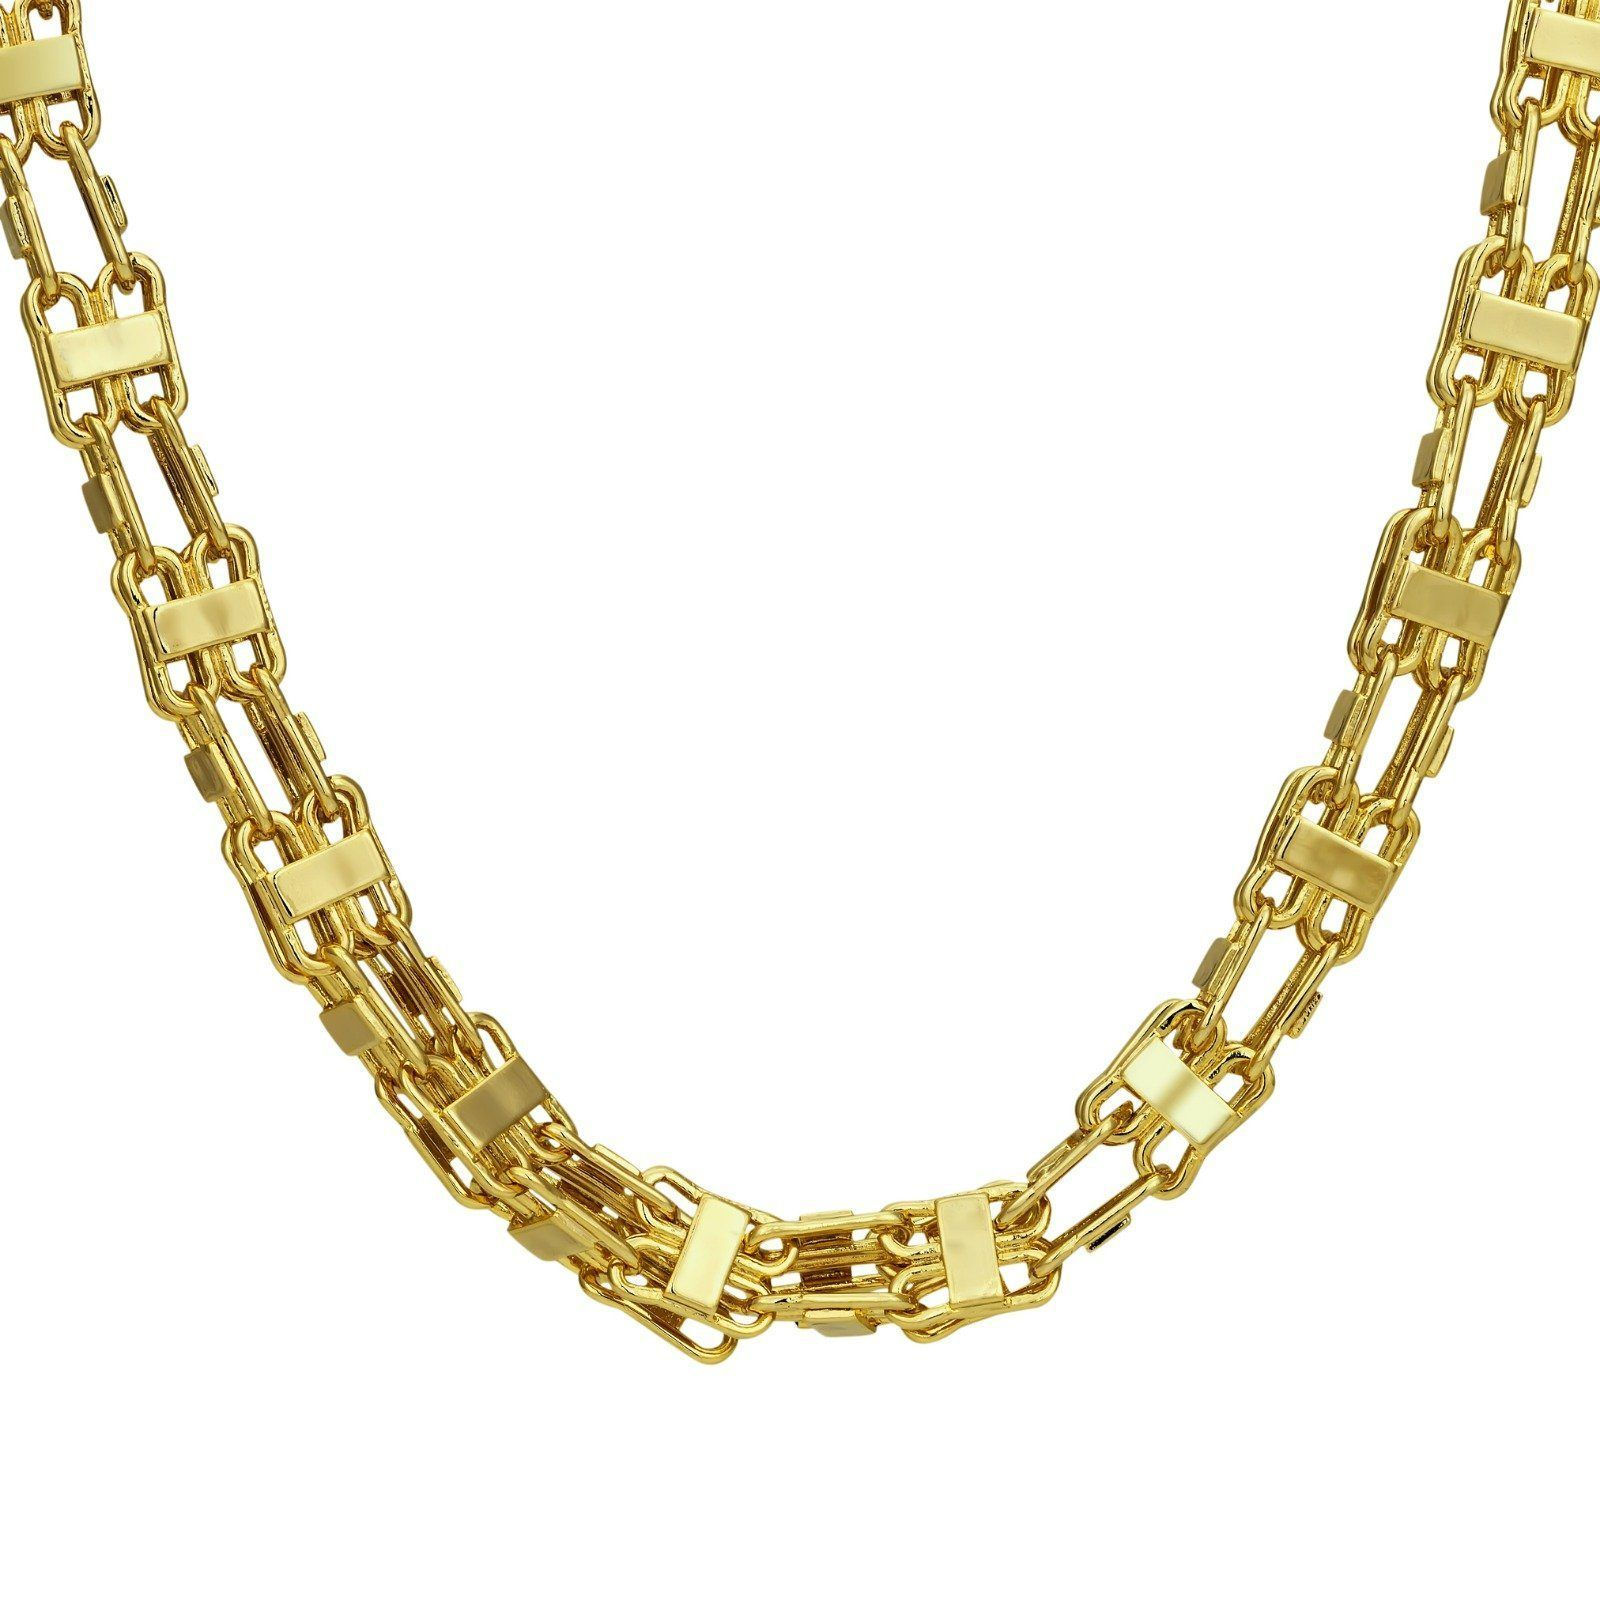 Handmade XL 10MM 18K Gold Filled or Silver Plated Cage Chain #watches  #bracelets #costume #menjewelry #Jewelry… | Gold necklace set, Fashion  jewellery online, Gold